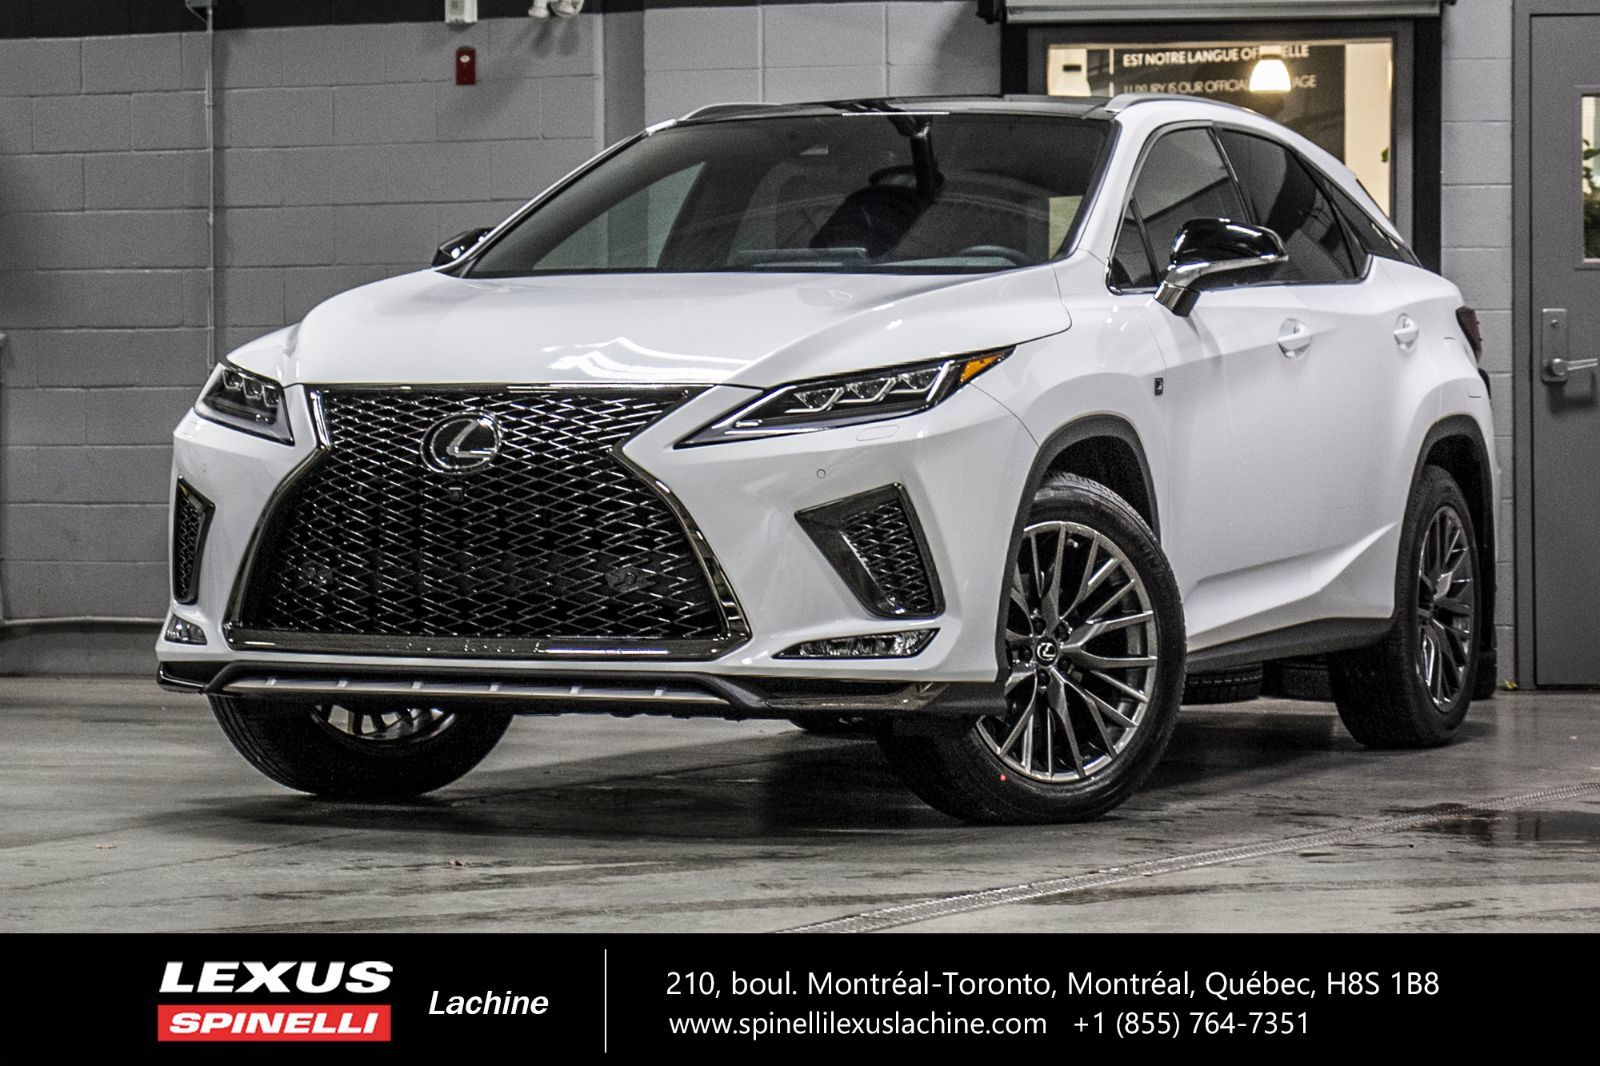 Used 2020 Lexus Rx 350 F Sport Iii Awd Cuir Toit Camera Pano Gps Carplay In Montreal Laval And South Shore Demo 20tl400